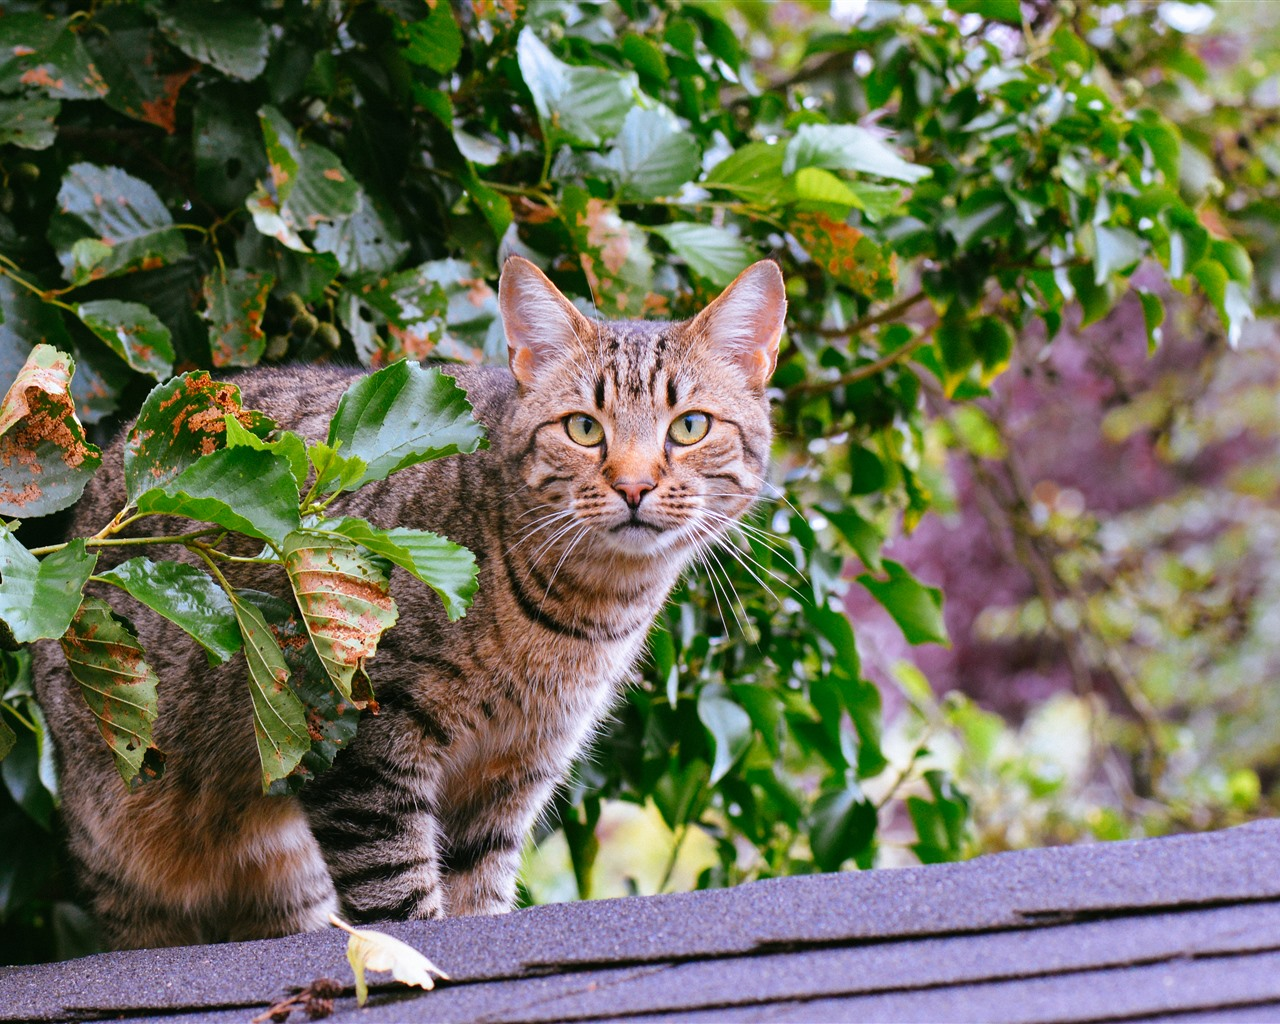 Wallpaper Cat Look, Green Leaves 5120x2880 UHD 5K Picture